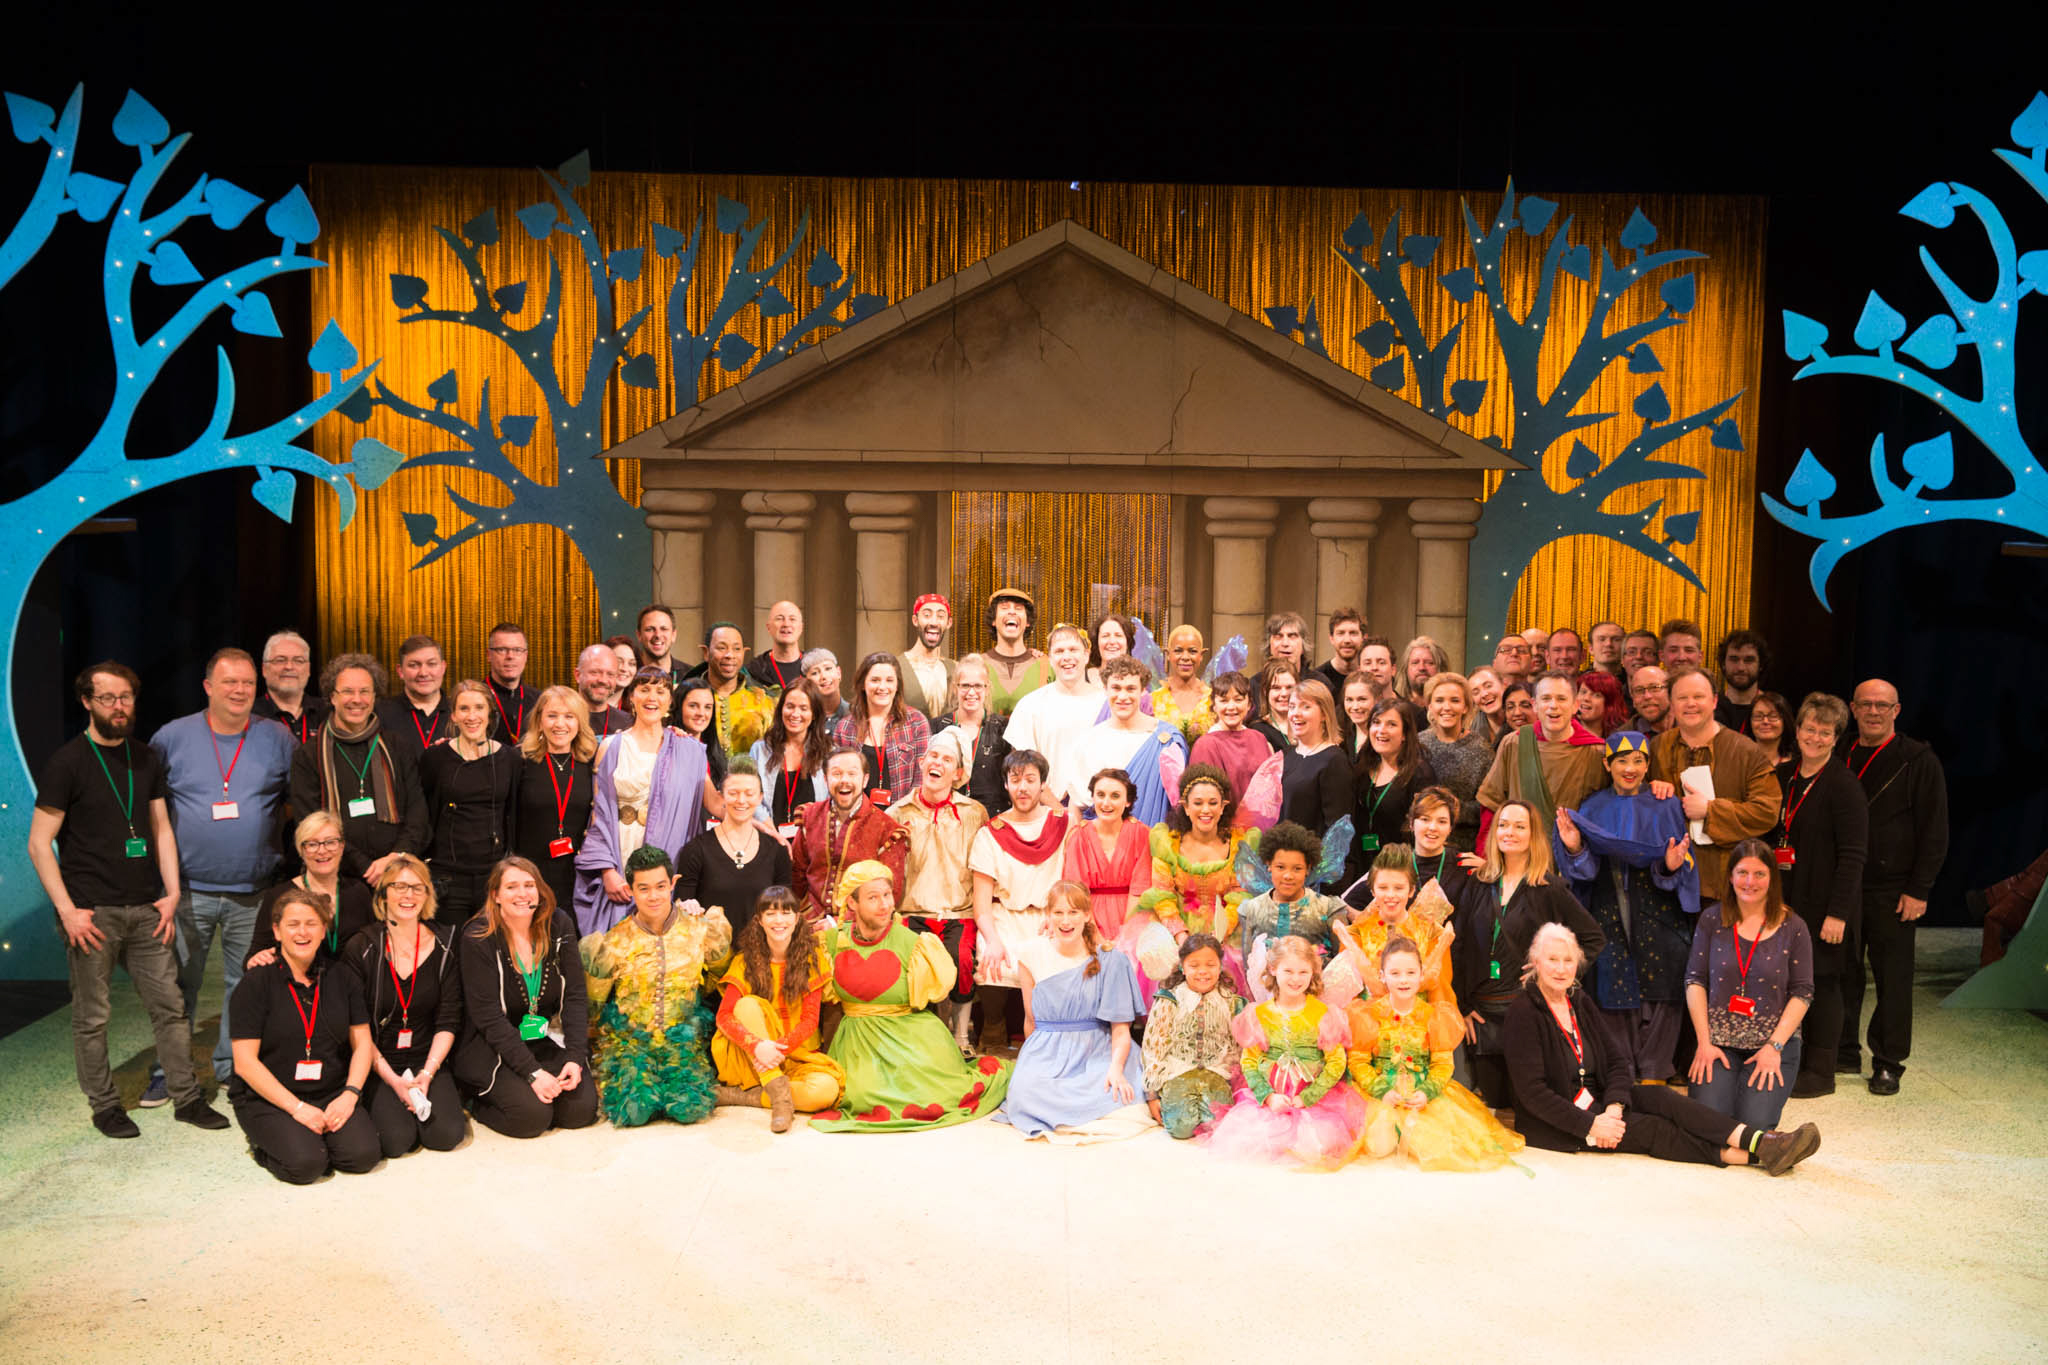 MND Cast and Crew low res.jpeg